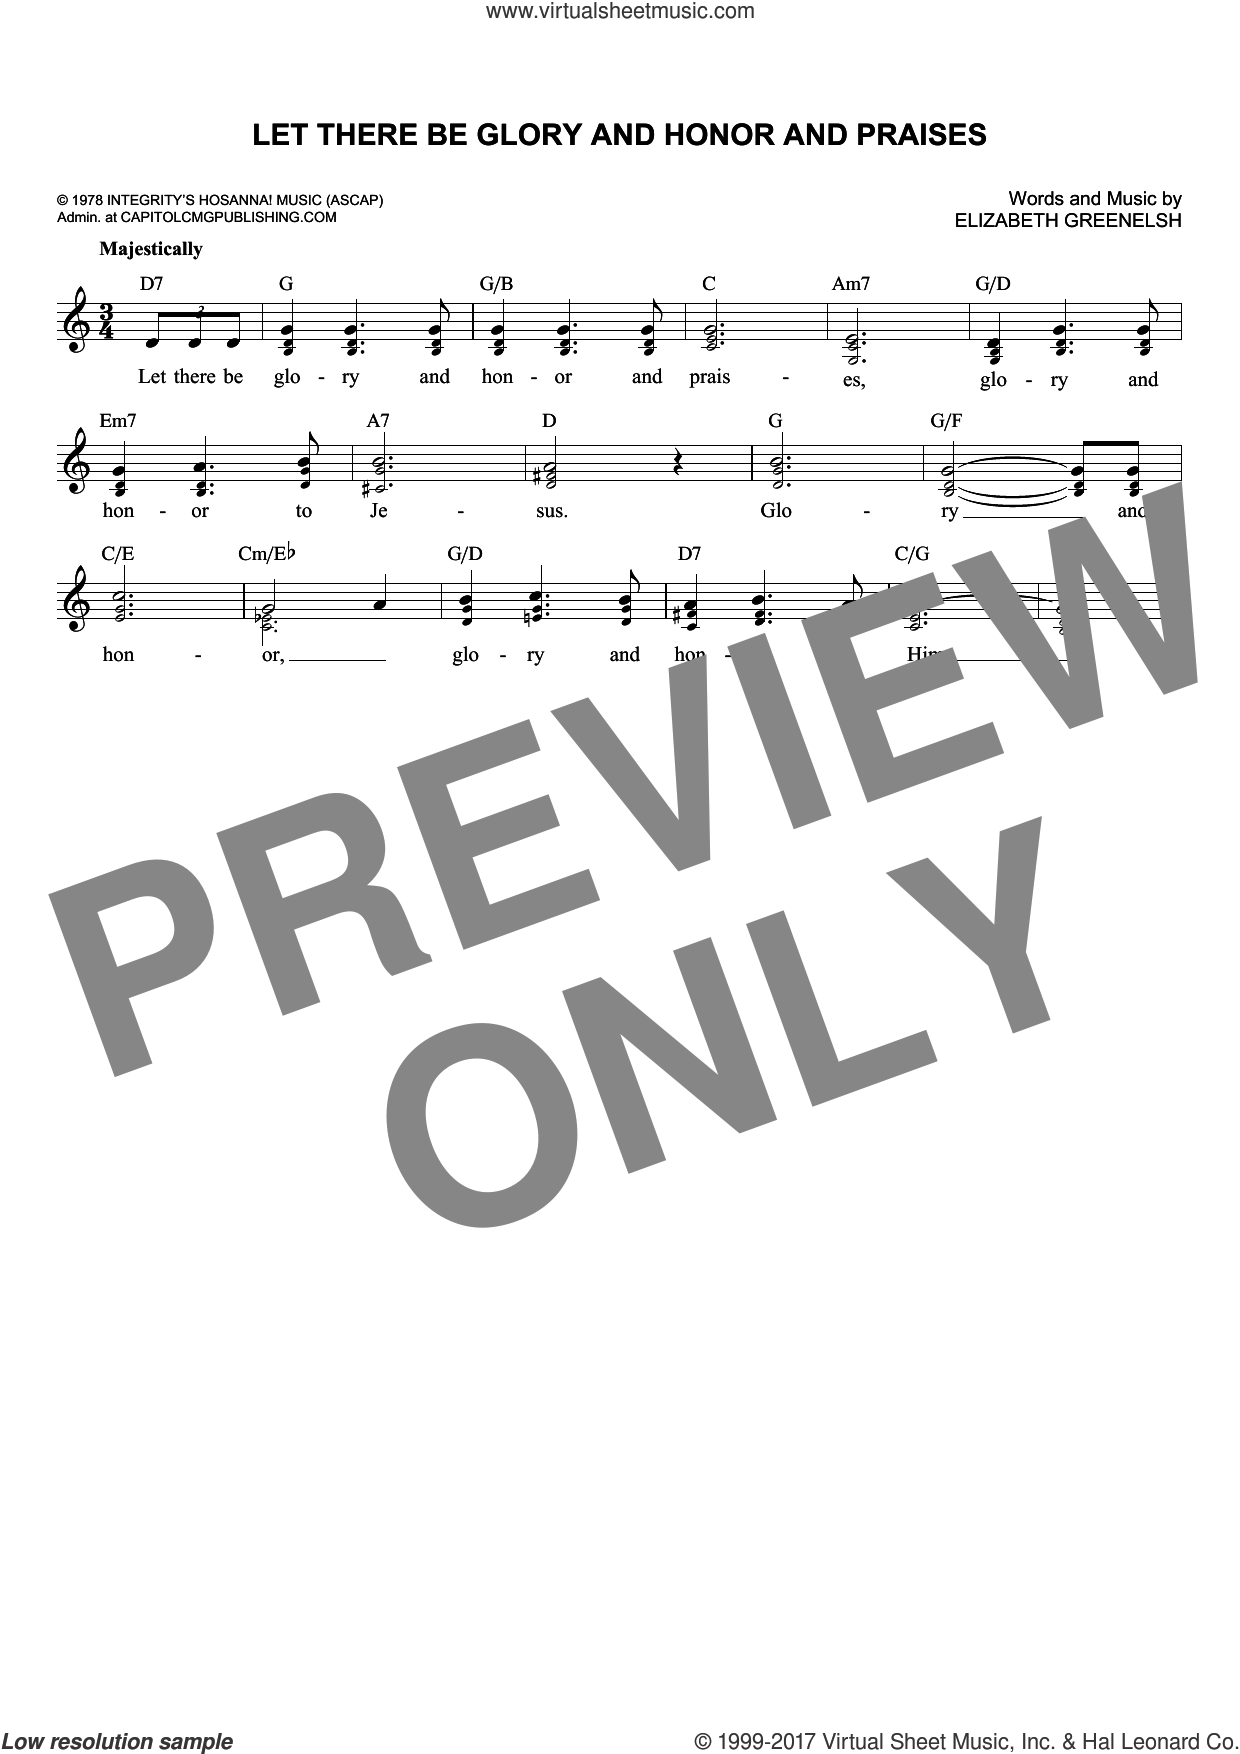 Let There Be Glory And Honor And Praises sheet music for voice and other instruments (fake book) by Elizabeth Greenelsh, intermediate skill level